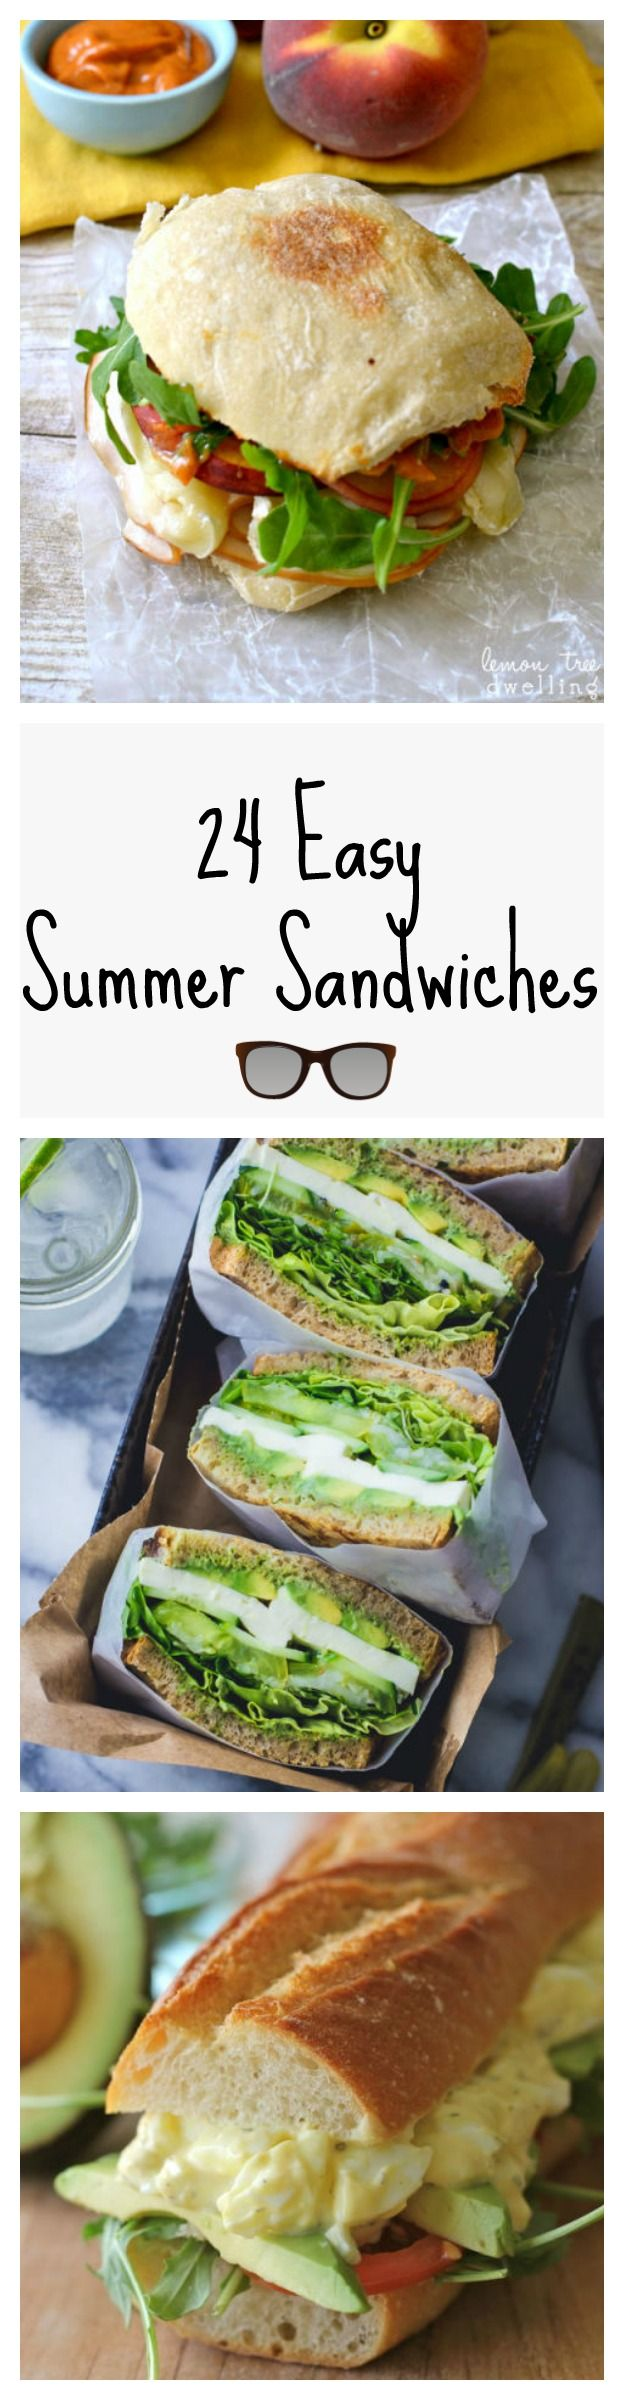 Make packing for a picnic easy and delicious with these portable and yummy sandwiches.